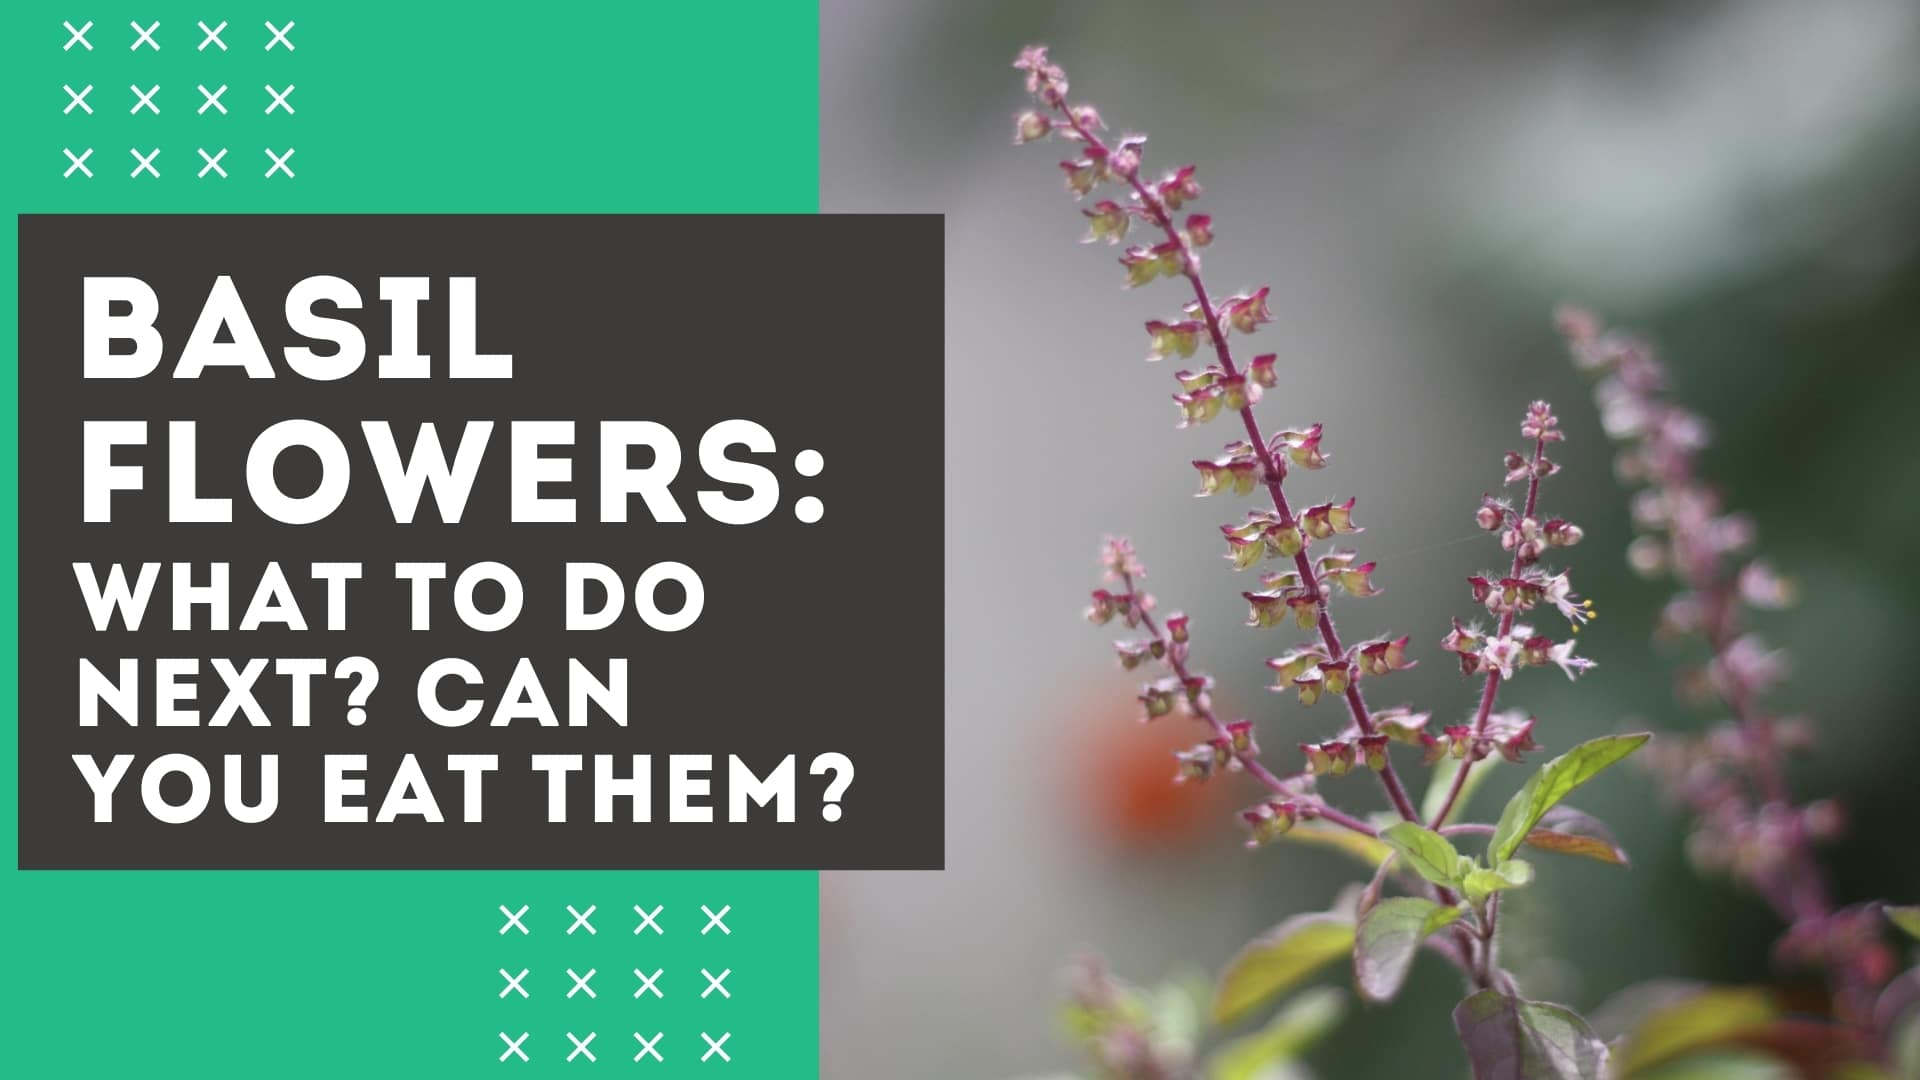 Basil Flowers: Remove Them? [& Can You Still Eat the Leaves?]